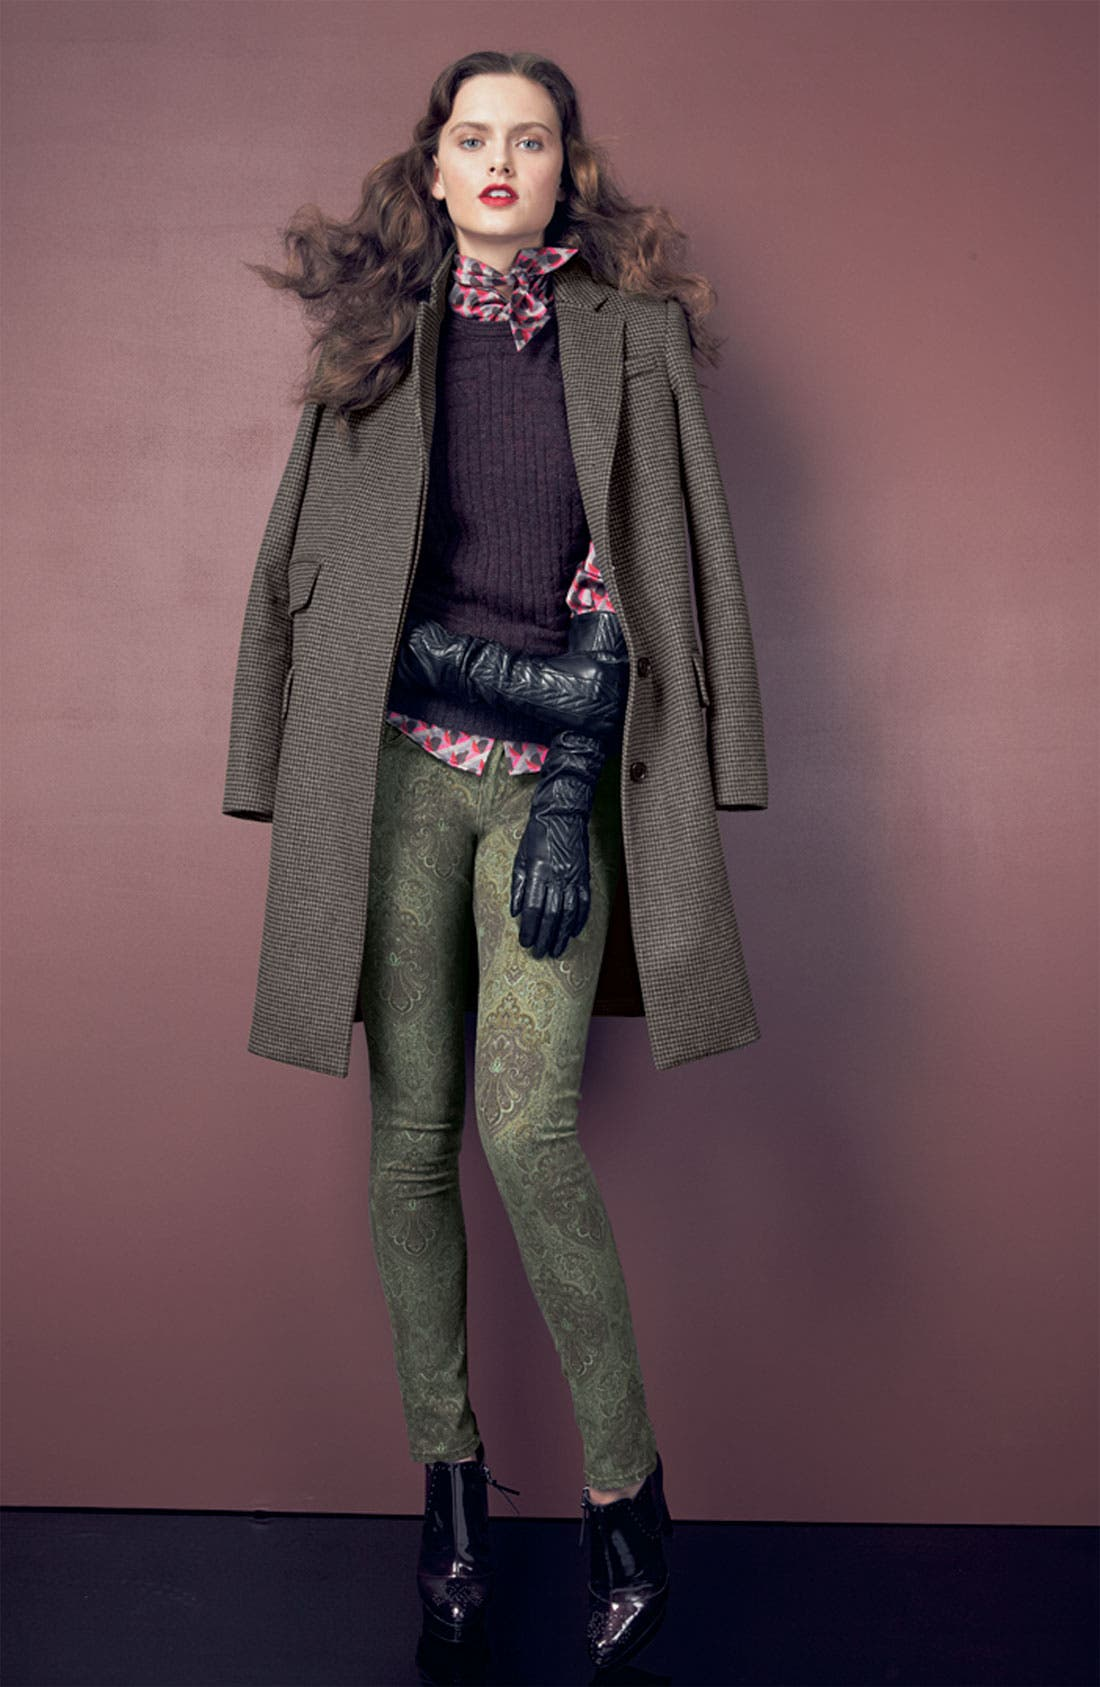 Main Image - MARC BY MARC JACOBS Coat, Sweater, Blouse & Paige Skinny Jeans